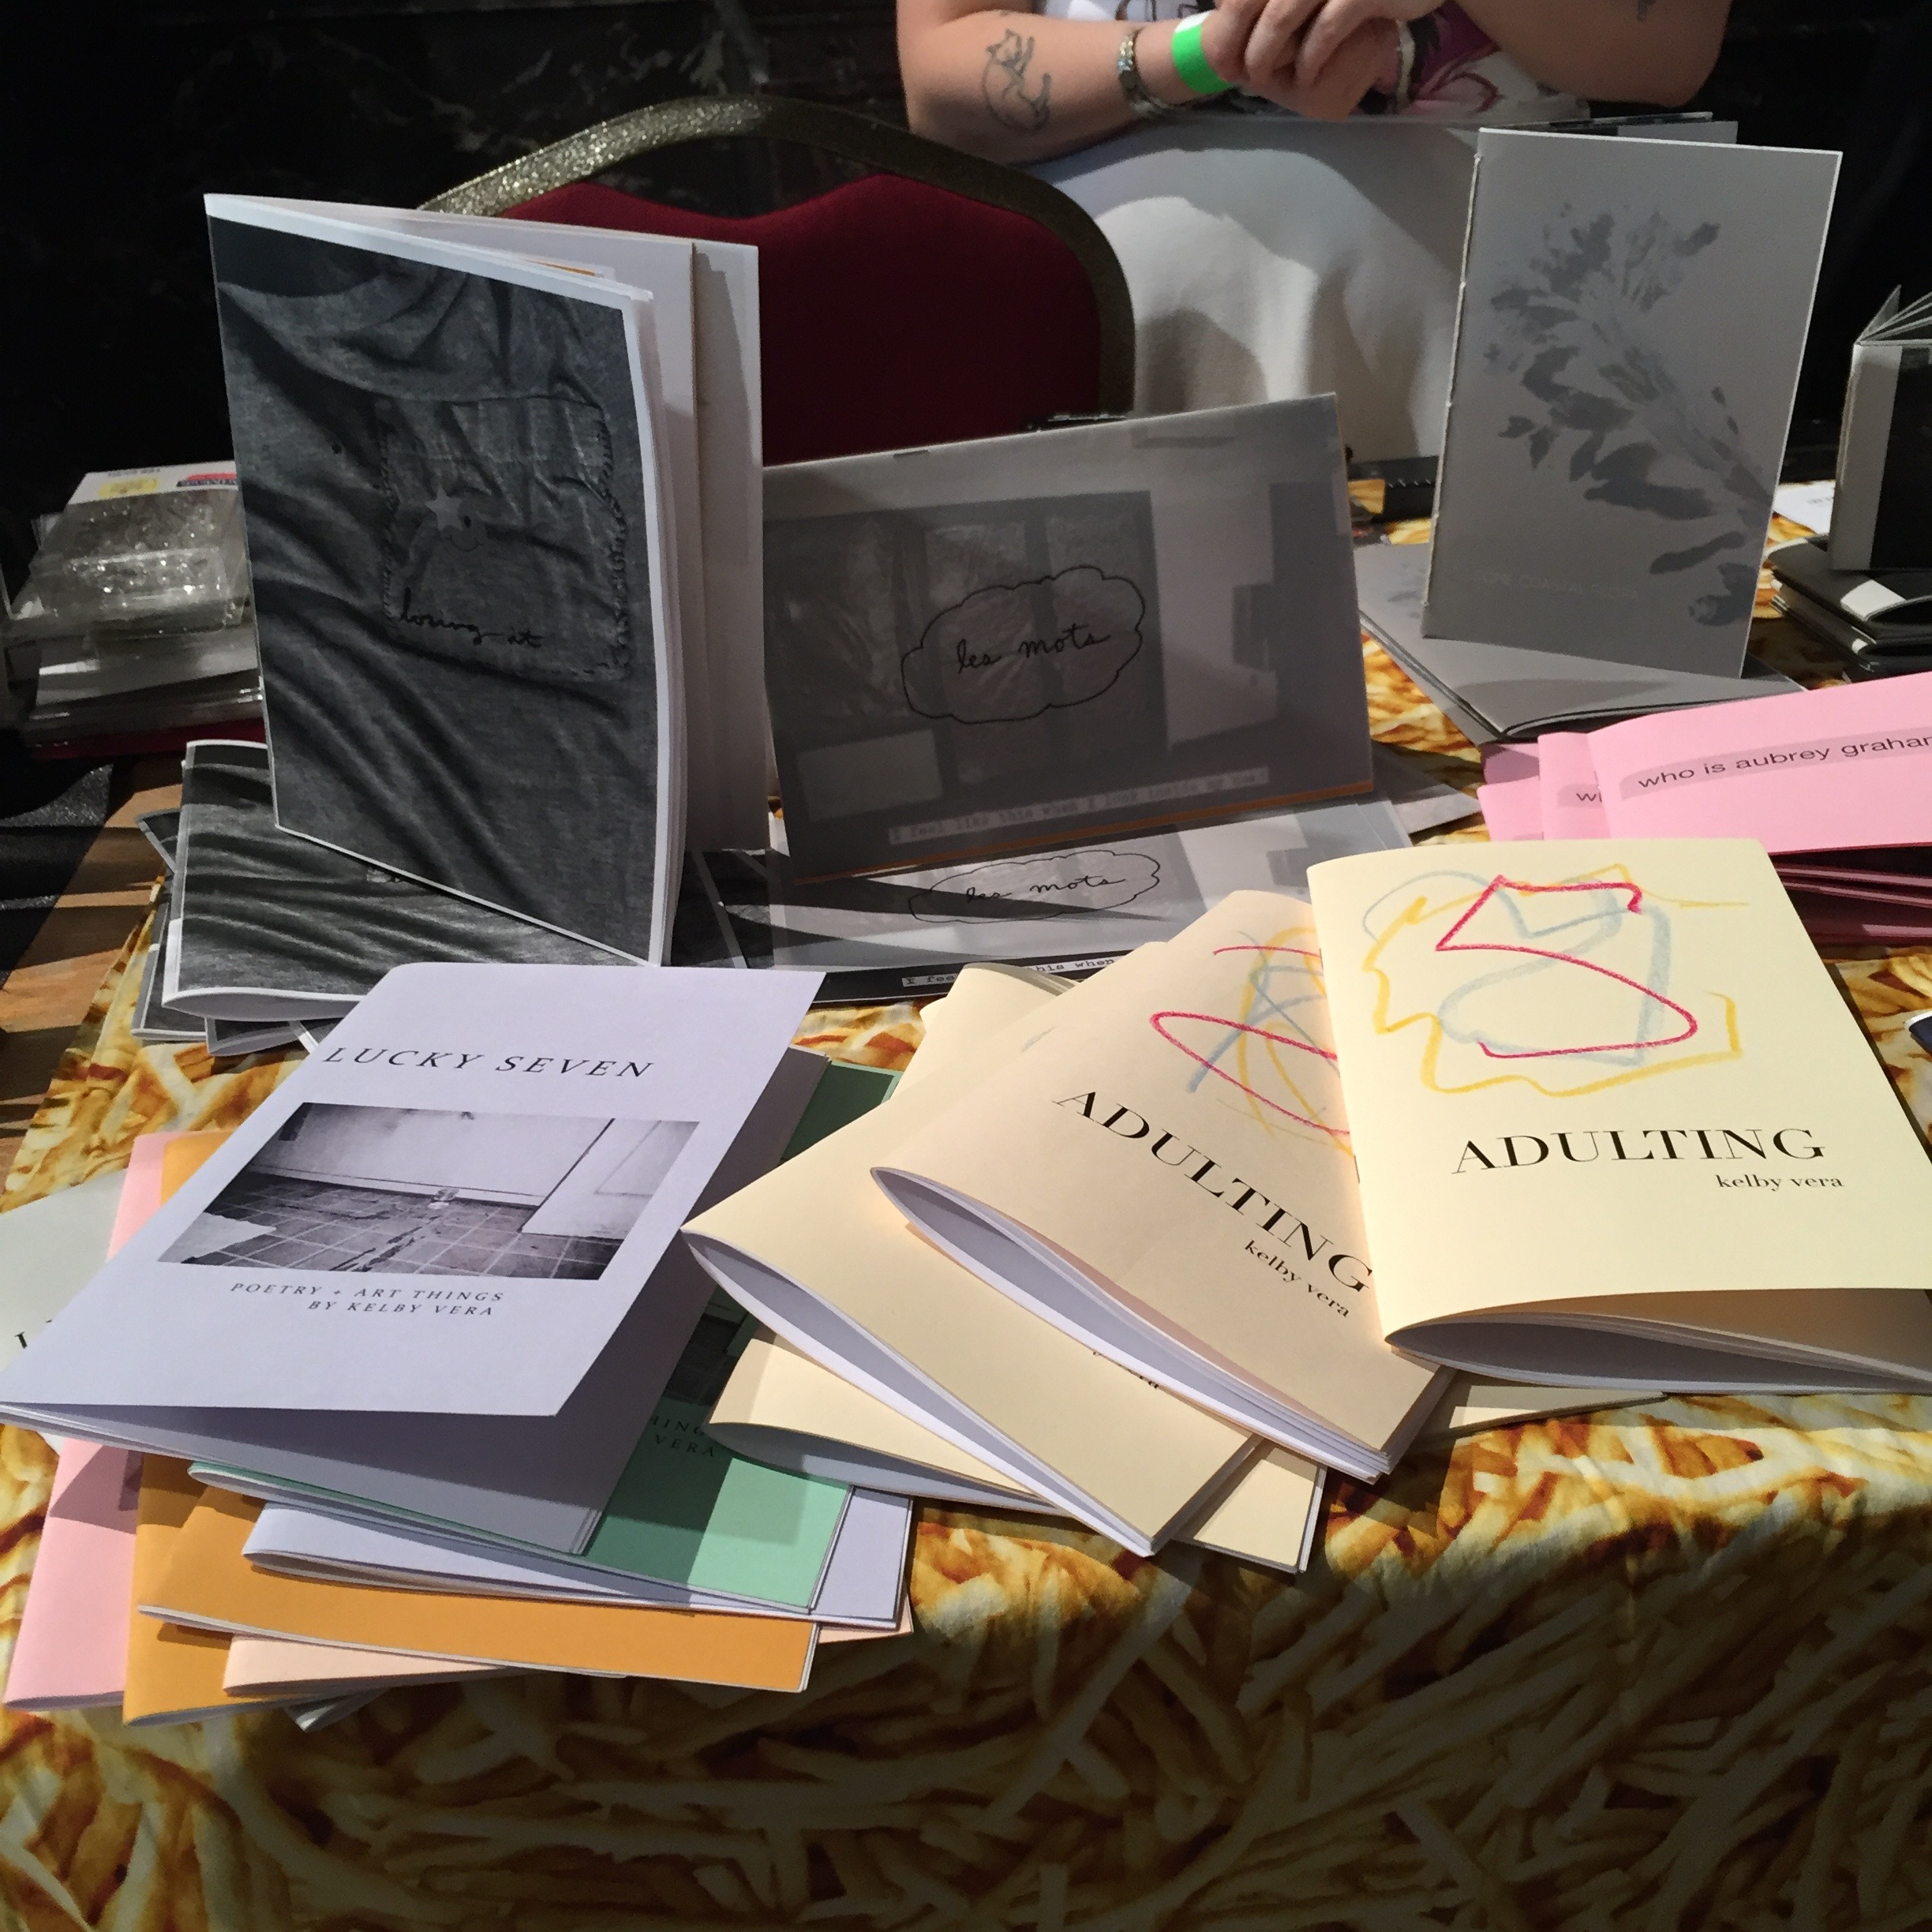 fb21c2e748 Little Xeroxed Books  A Life in Zines - Ampersand